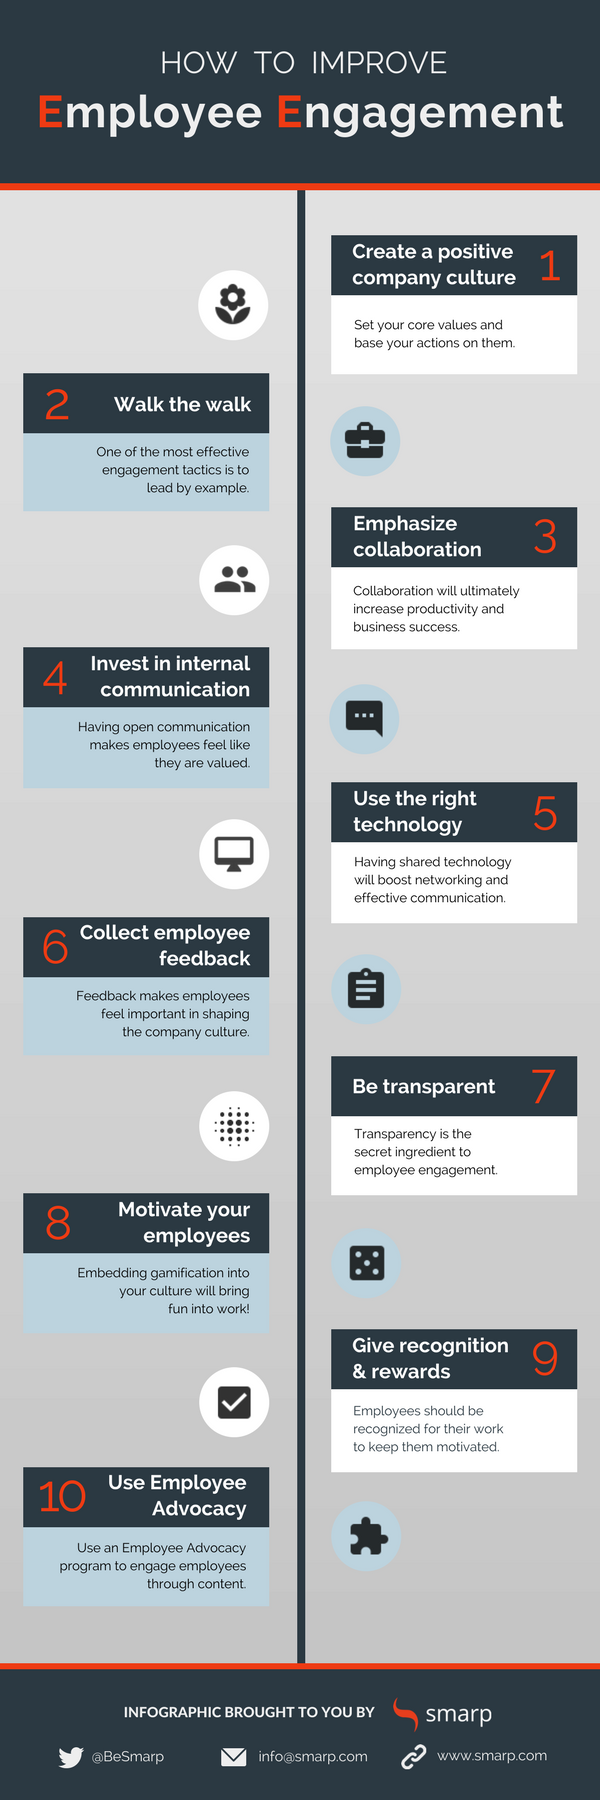 How to Improve Employee Engagement - Infographic